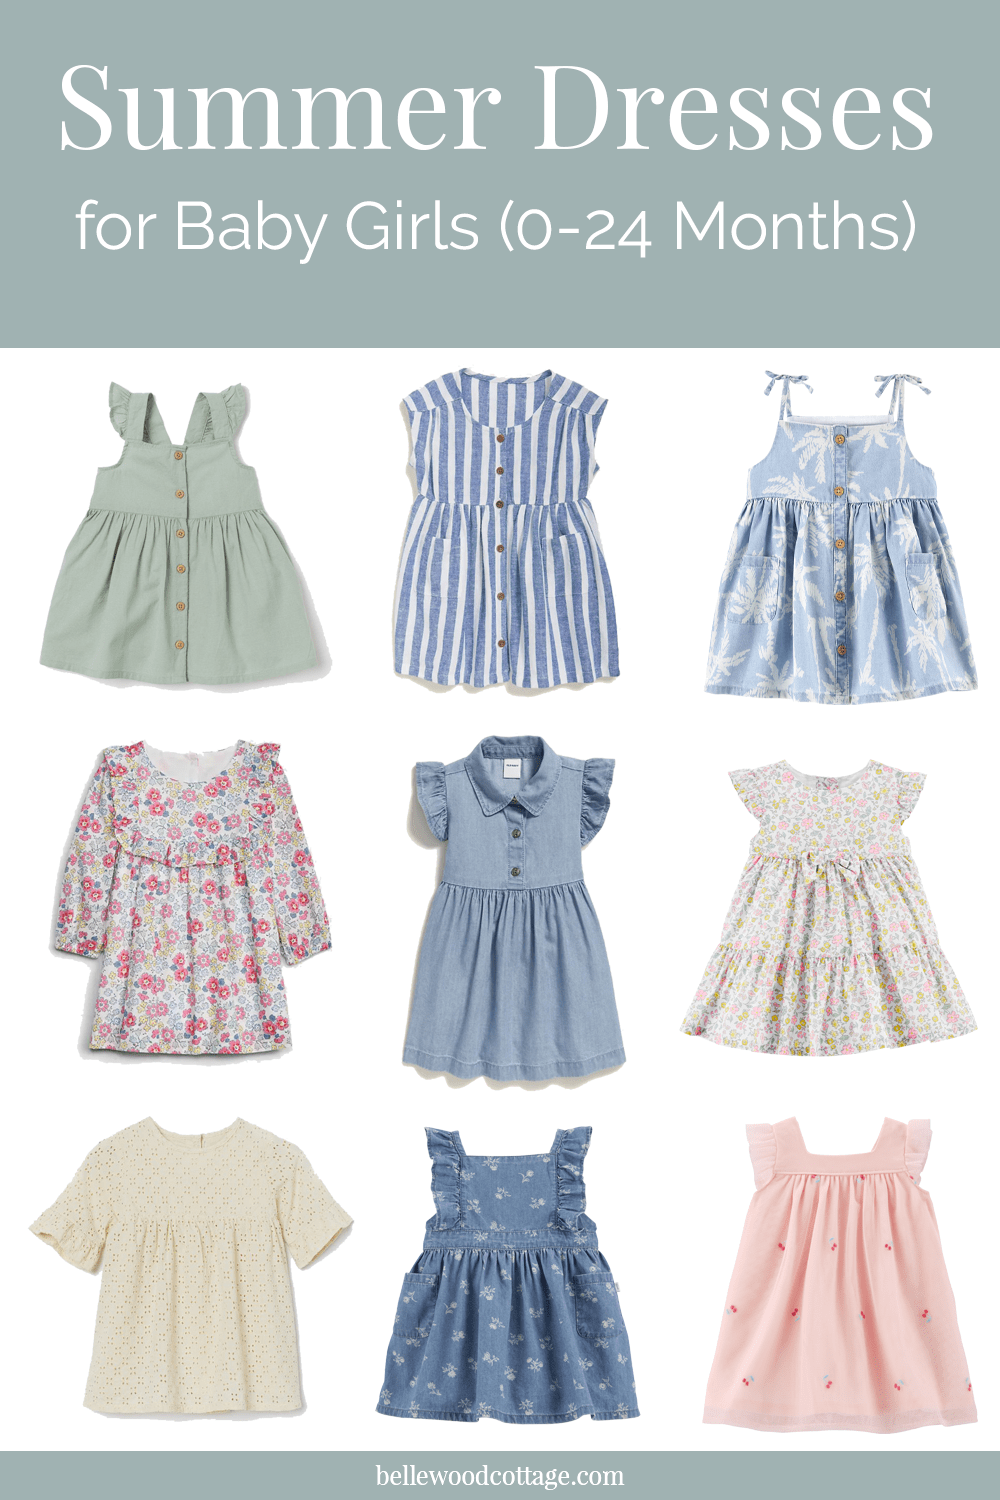 Collage image of summer dresses for baby girls.